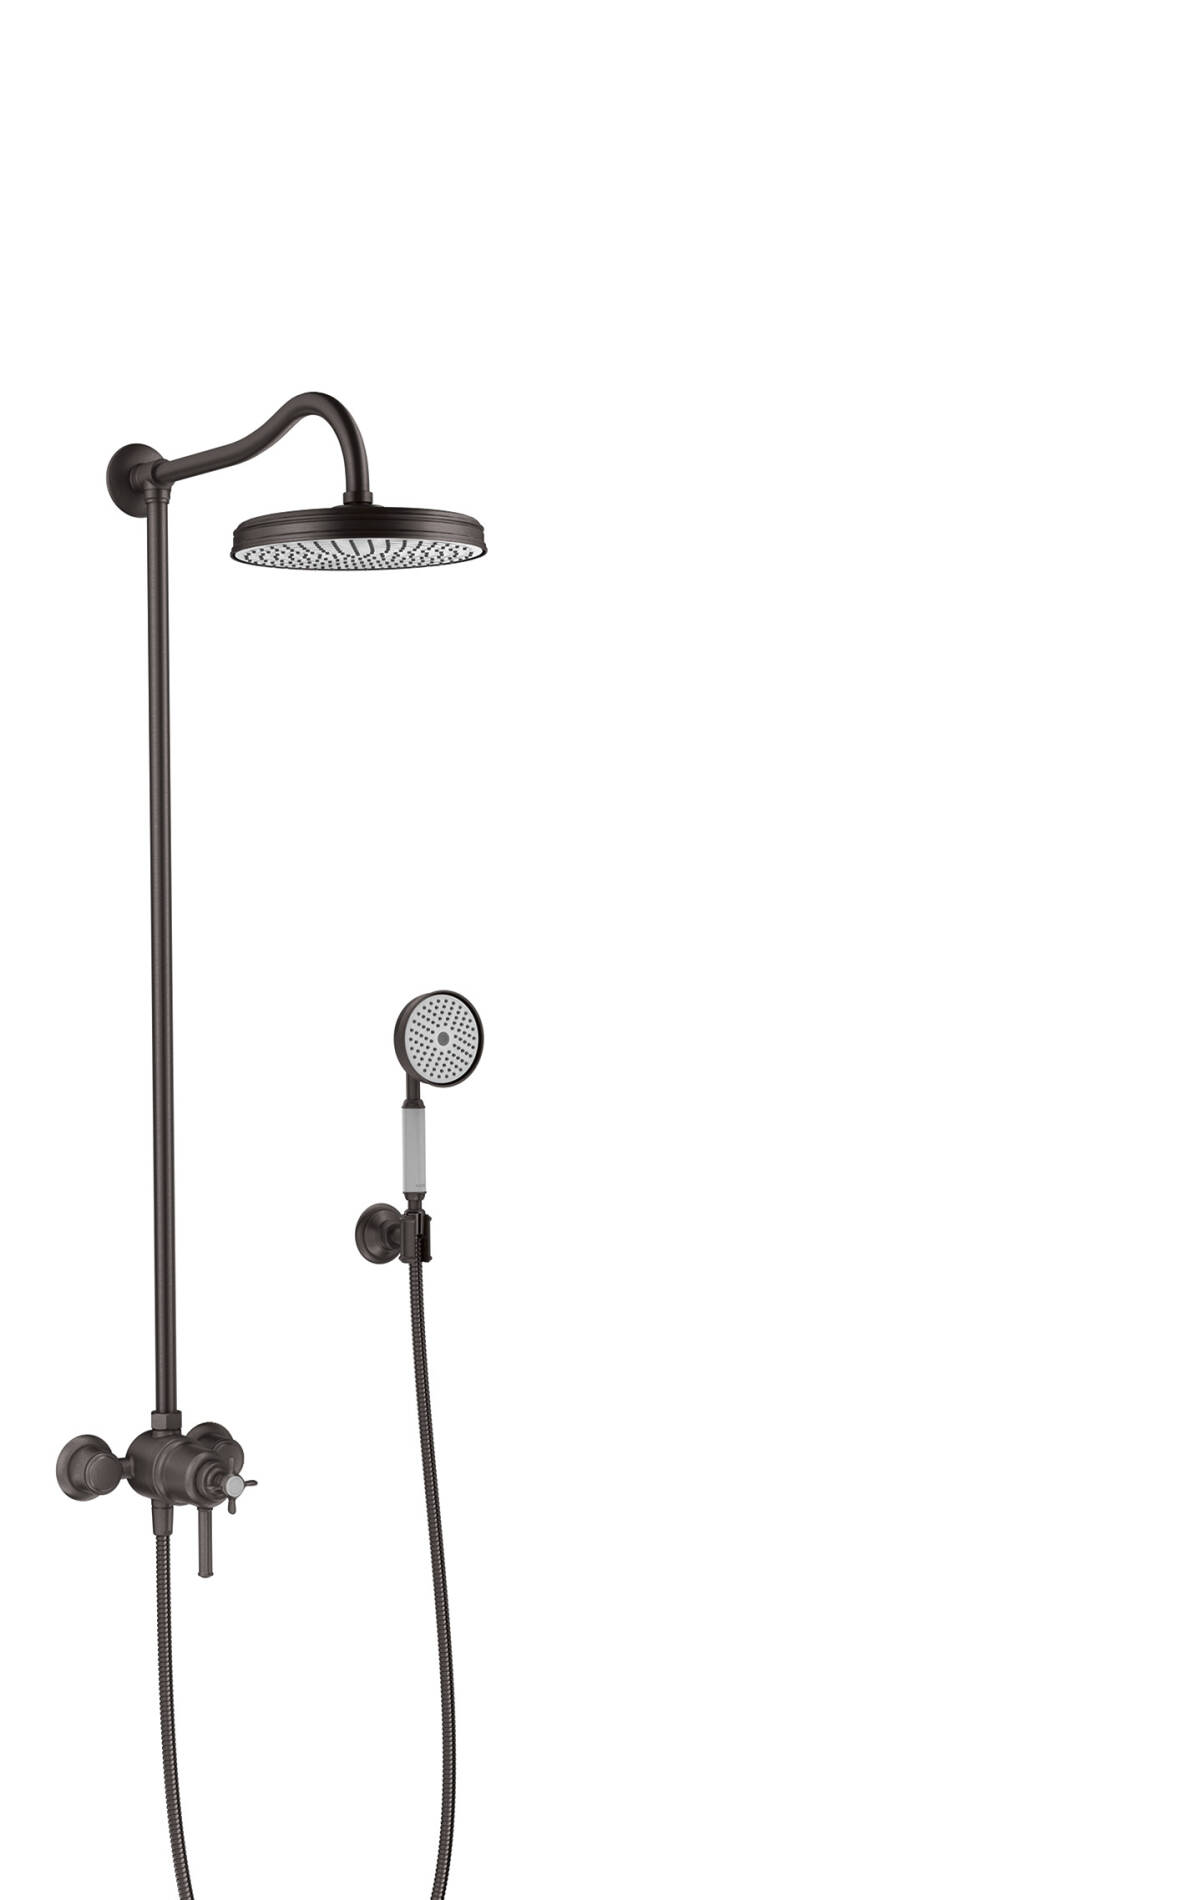 Showerpipe with thermostatic mixer and 1jet overhead shower, Brushed Black Chrome, 16570340